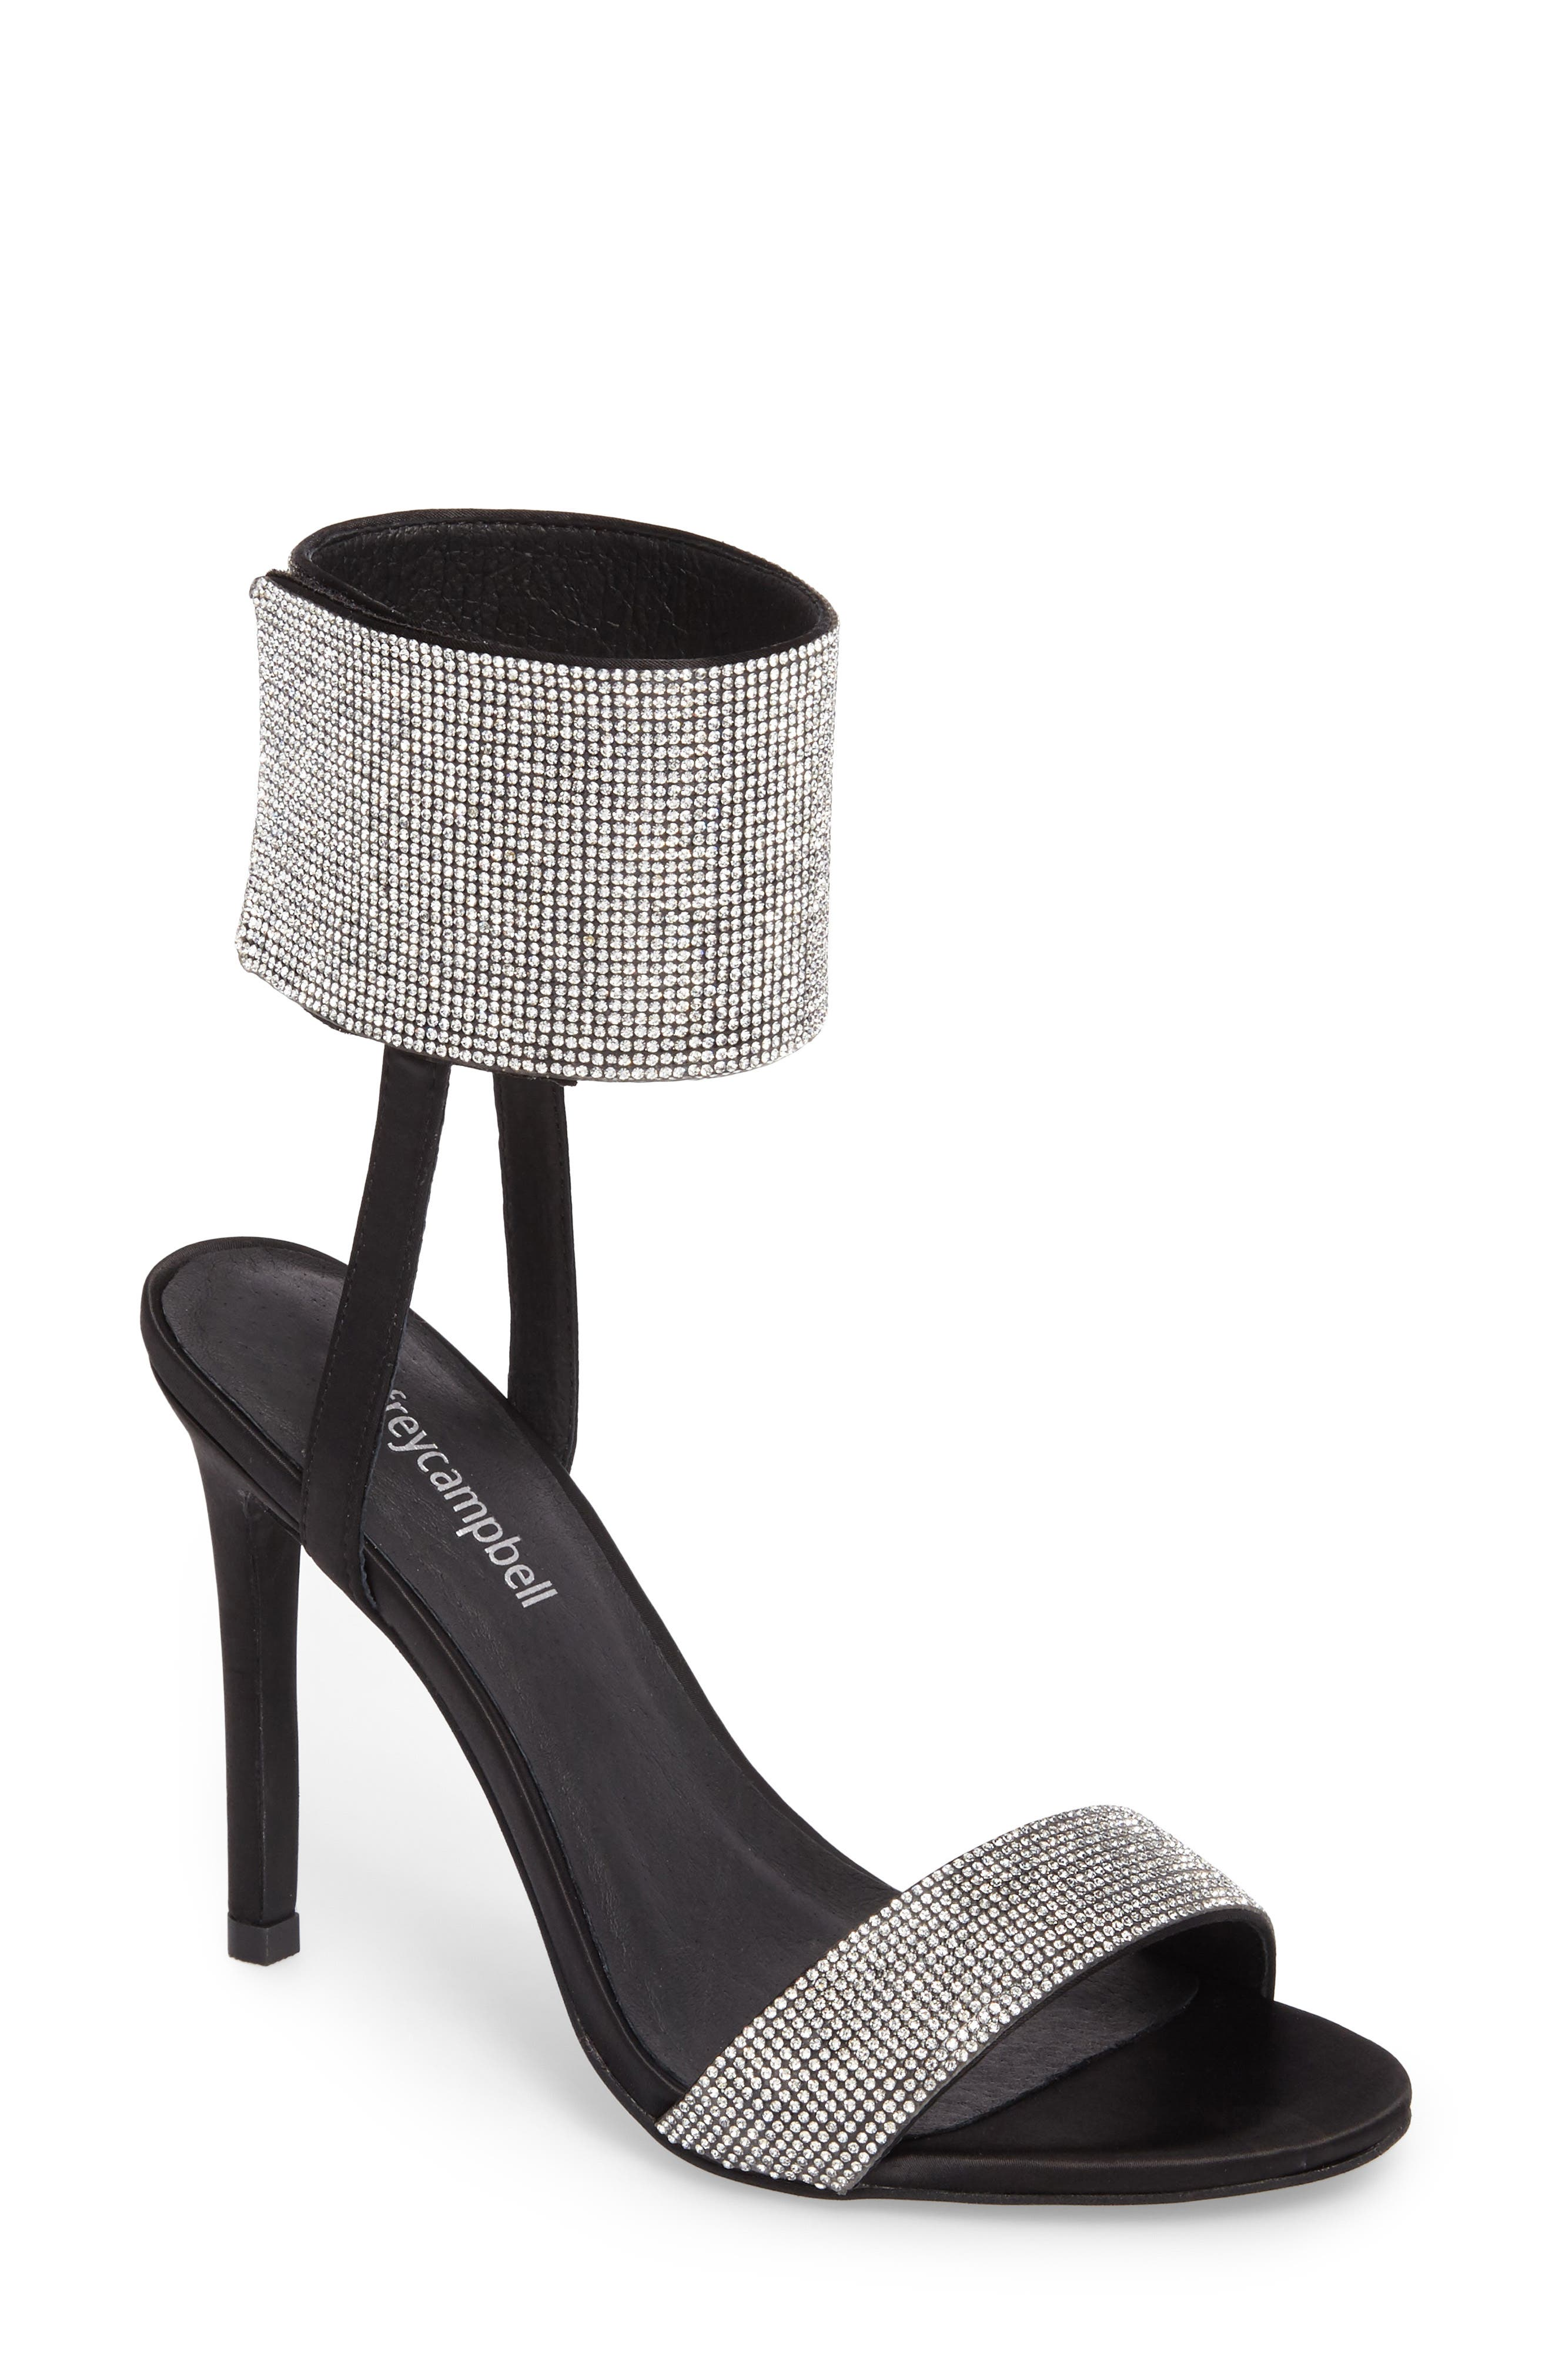 Alternate Image 1 Selected - Jeffrey Campbell Frost Ankle Cuff Sandal (Women)